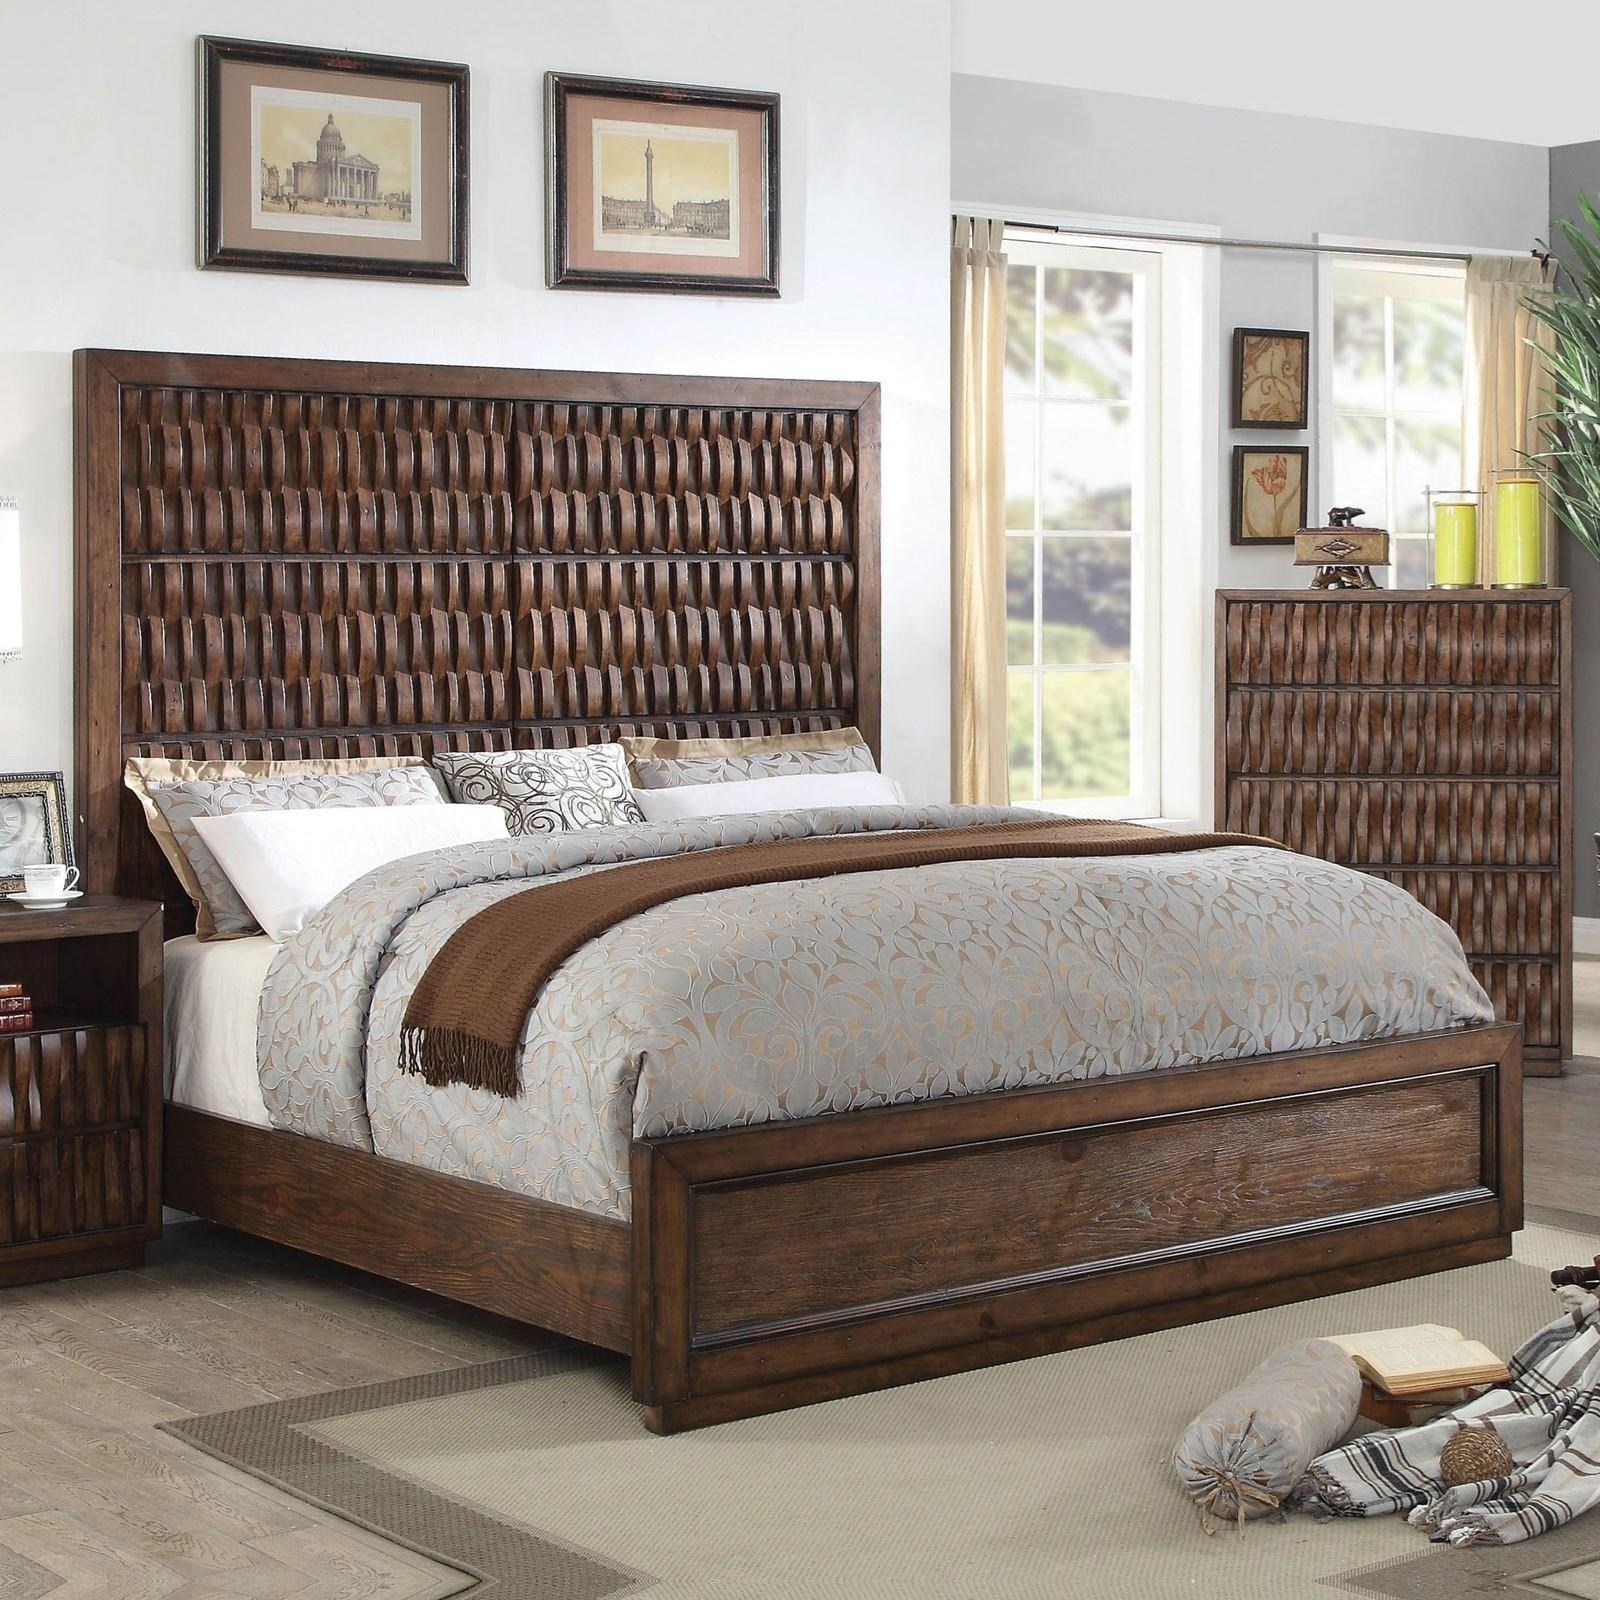 Furniture Of America Eutropia Cm7394q Bed Queen Size Wood Basketweave Bed With Wicker Look Corner Furniture Platform Beds Low Profile Beds